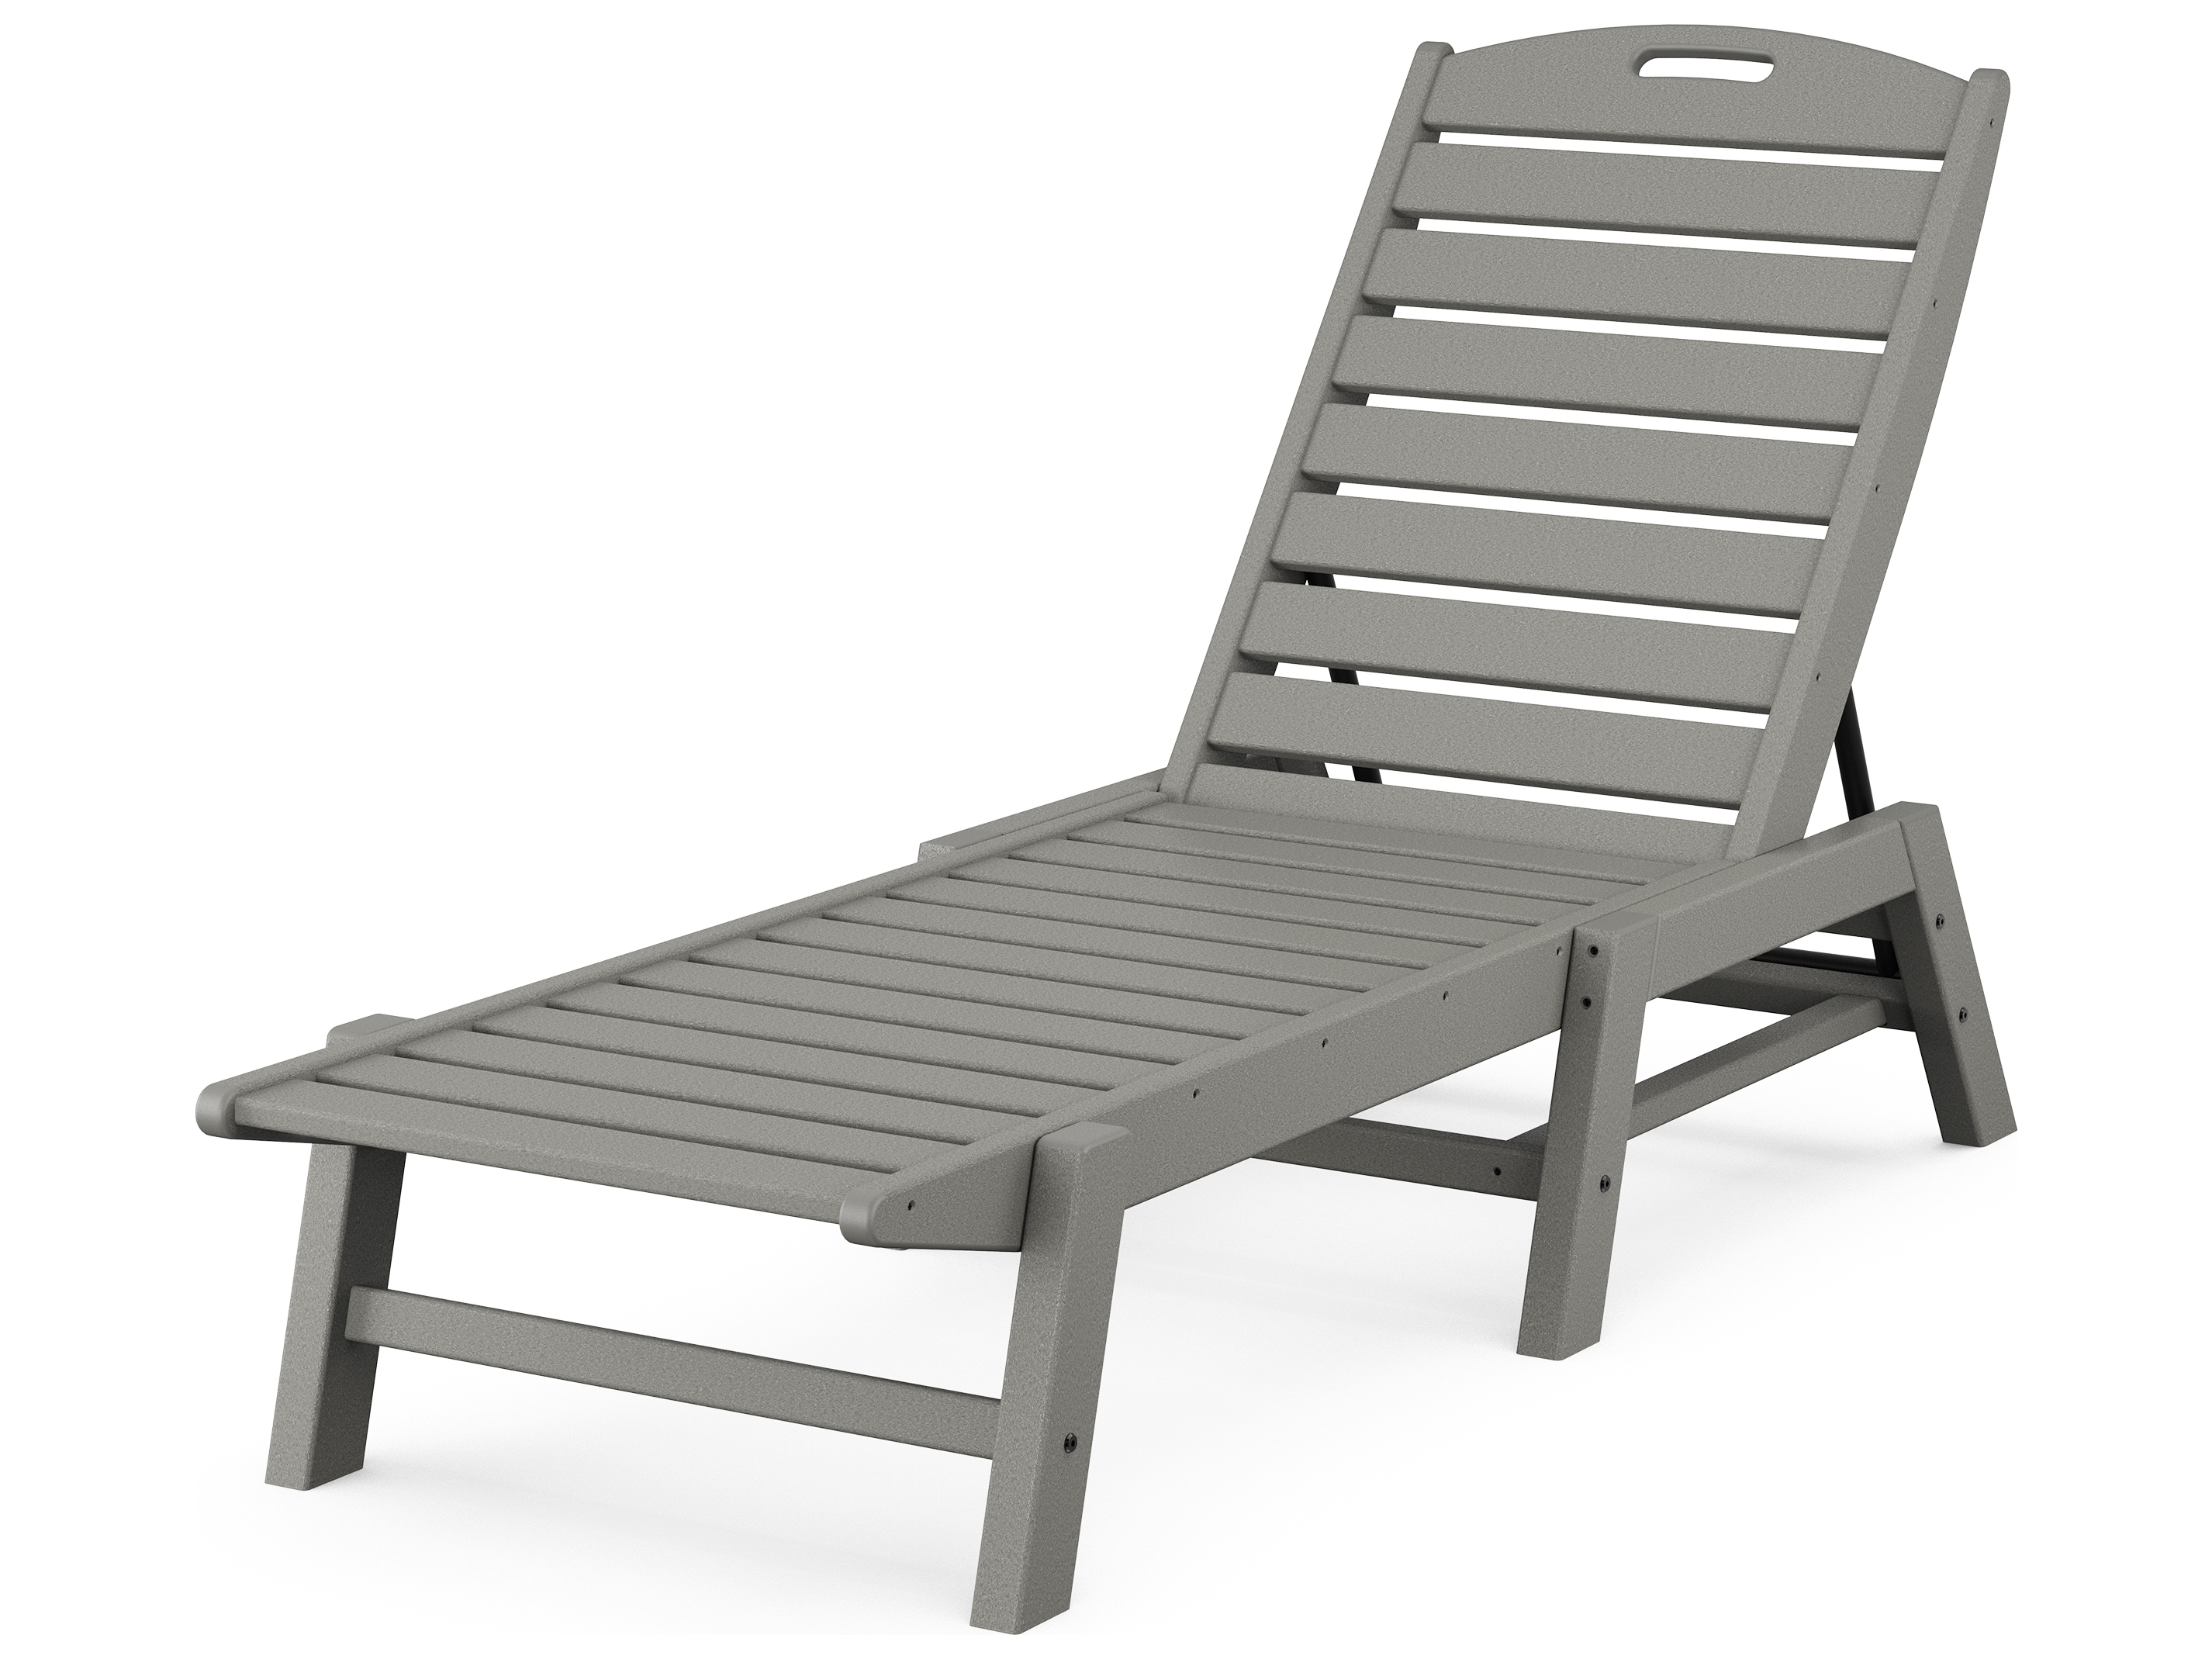 POLYWOOD Nautical Recycled Plastic Armless Stackable Chaise